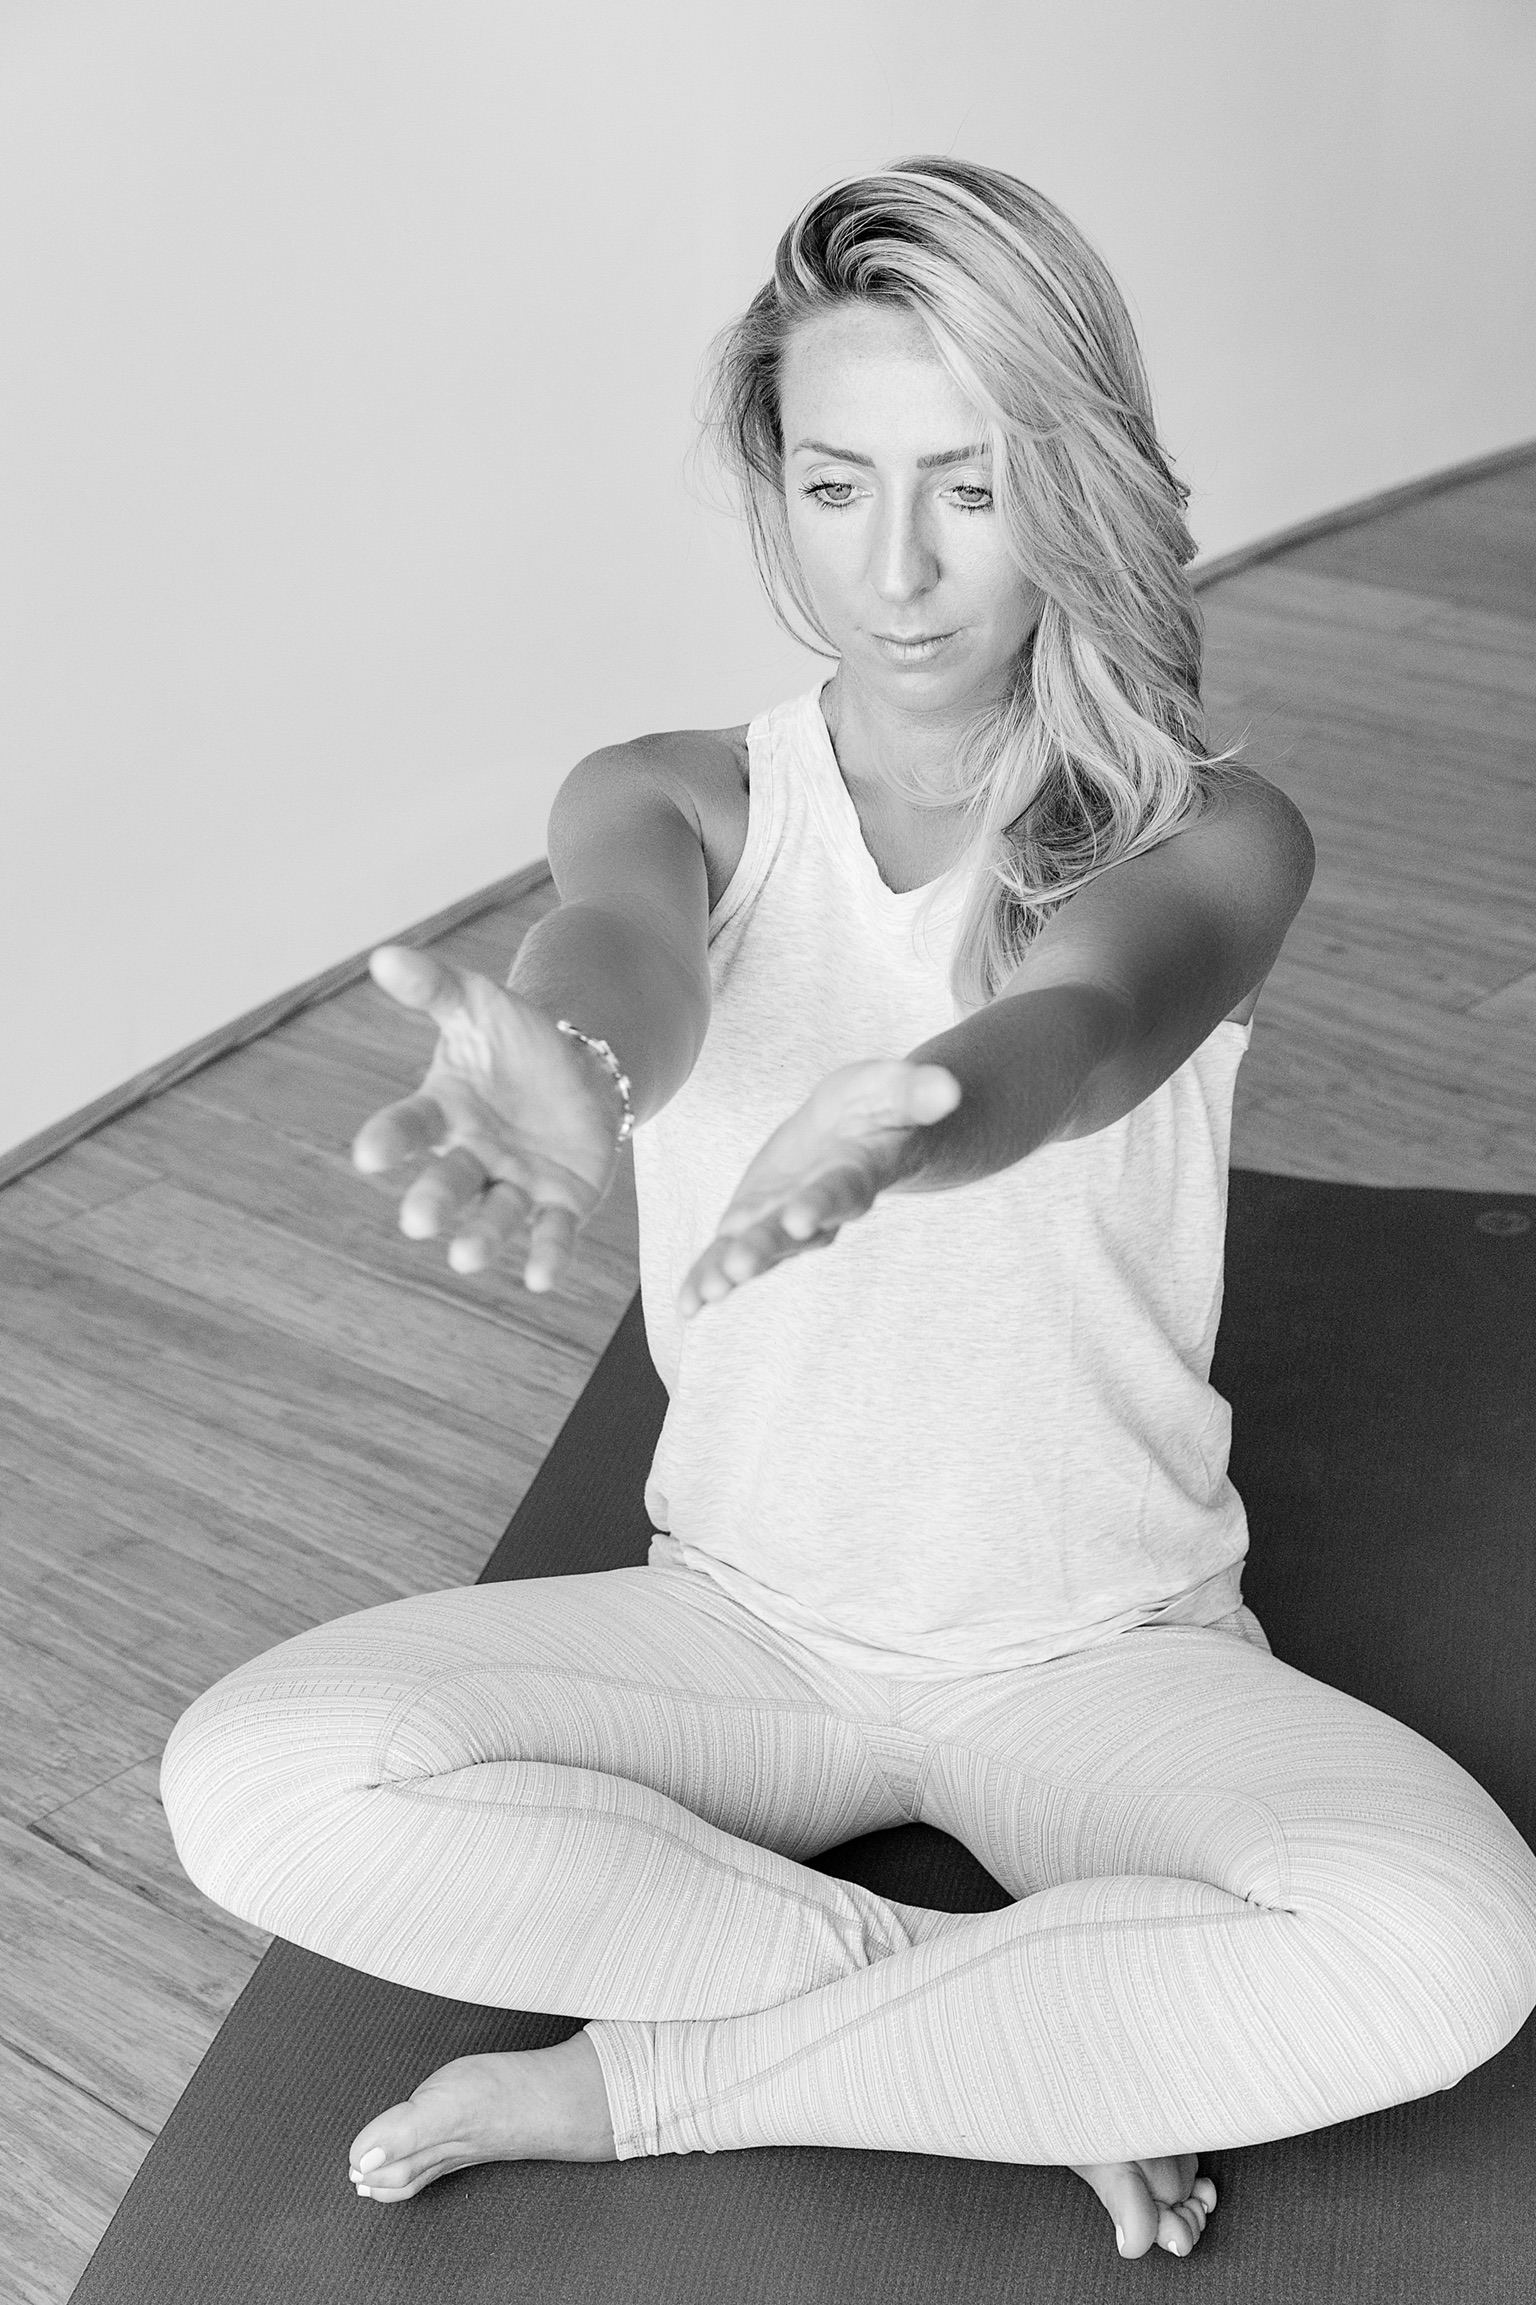 Miami Yoga Teacher | Florida | Meli